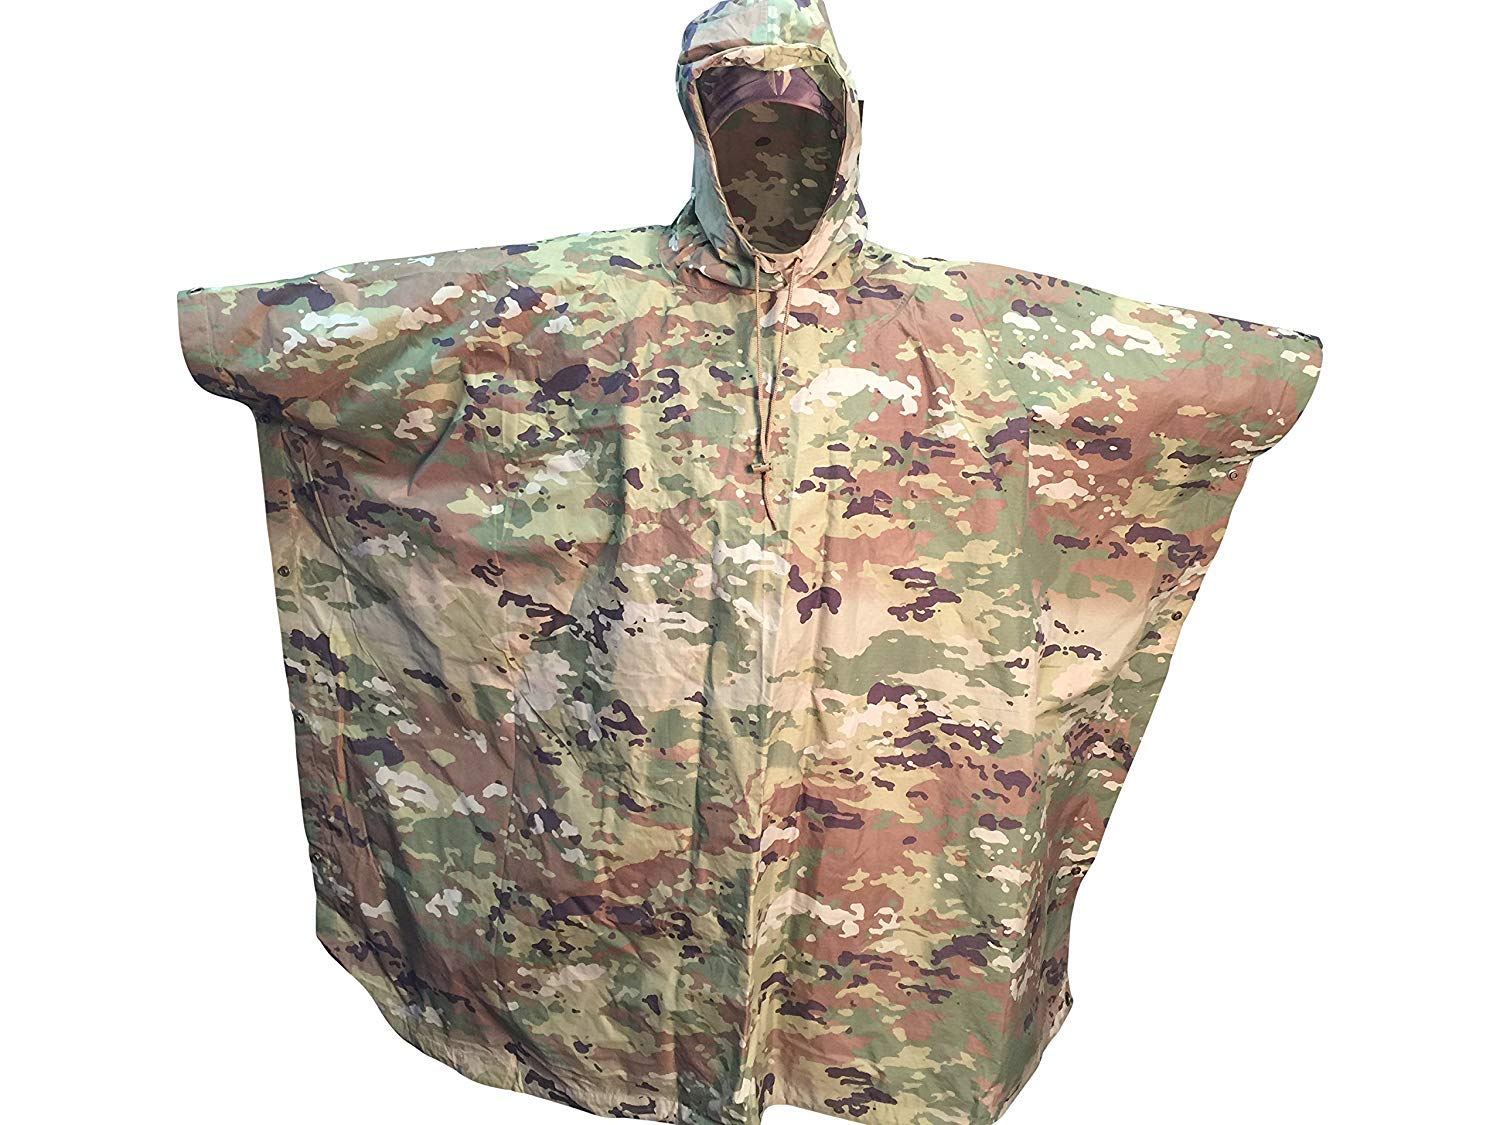 Acme Approved Waterproof Poncho - Military Style OCP Multicam 55'' x 82'' by Acme Approved